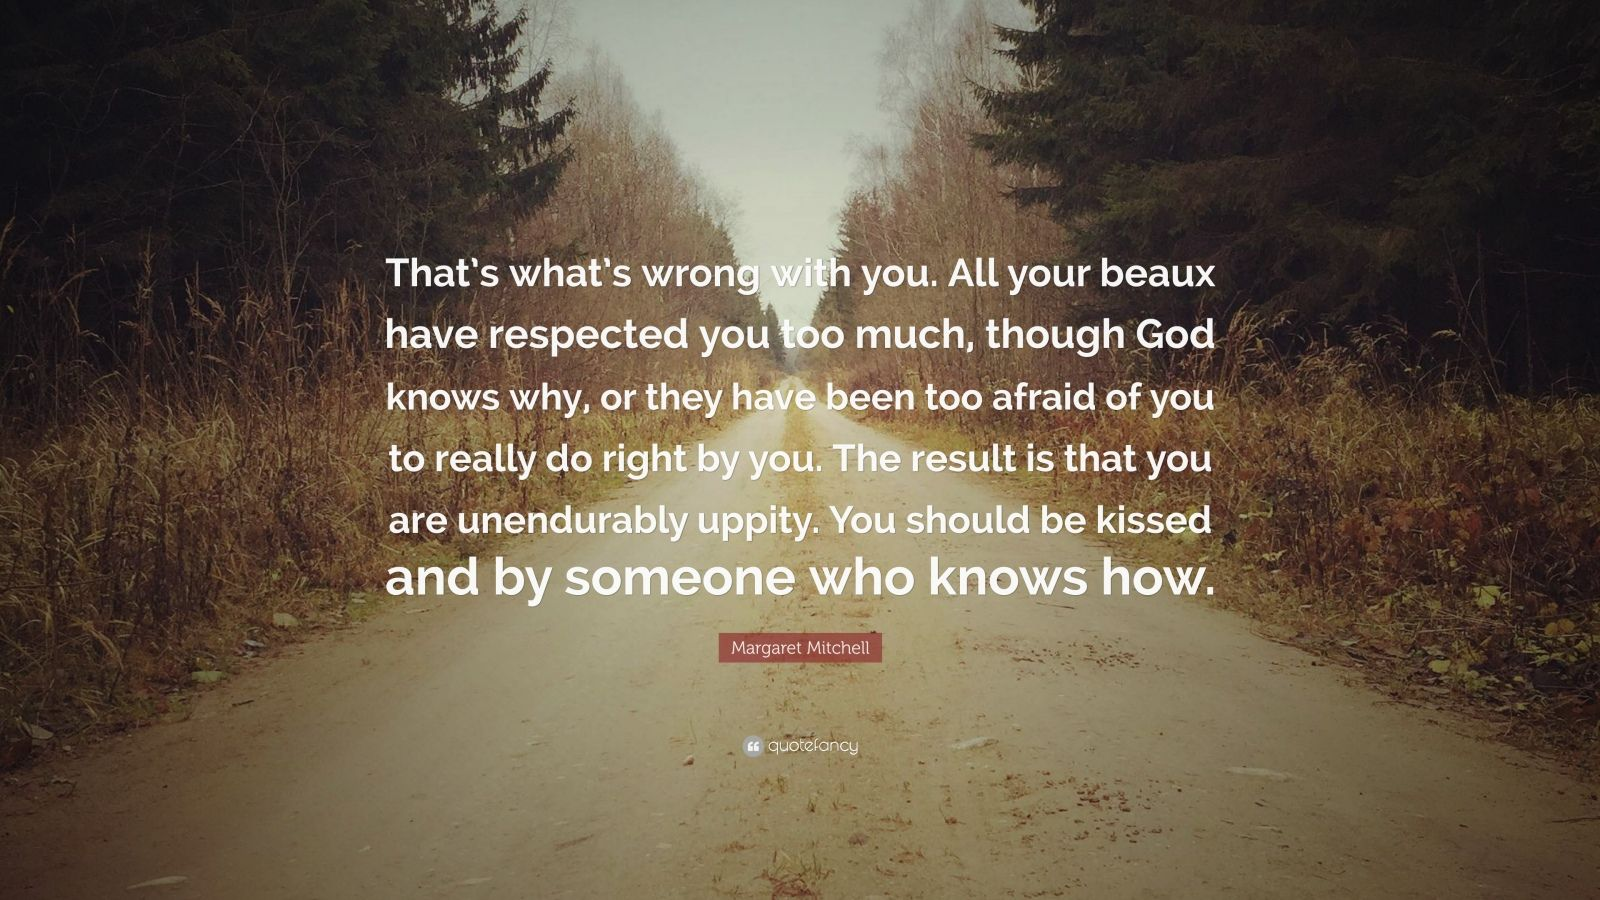 """Margaret Mitchell Quote: """"That's what's wrong with you. All your beaux have respected you too much, though God knows why, or they have been too afraid of you to really do right by you. The result is that you are unendurably uppity. You should be kissed and by someone who knows how."""""""